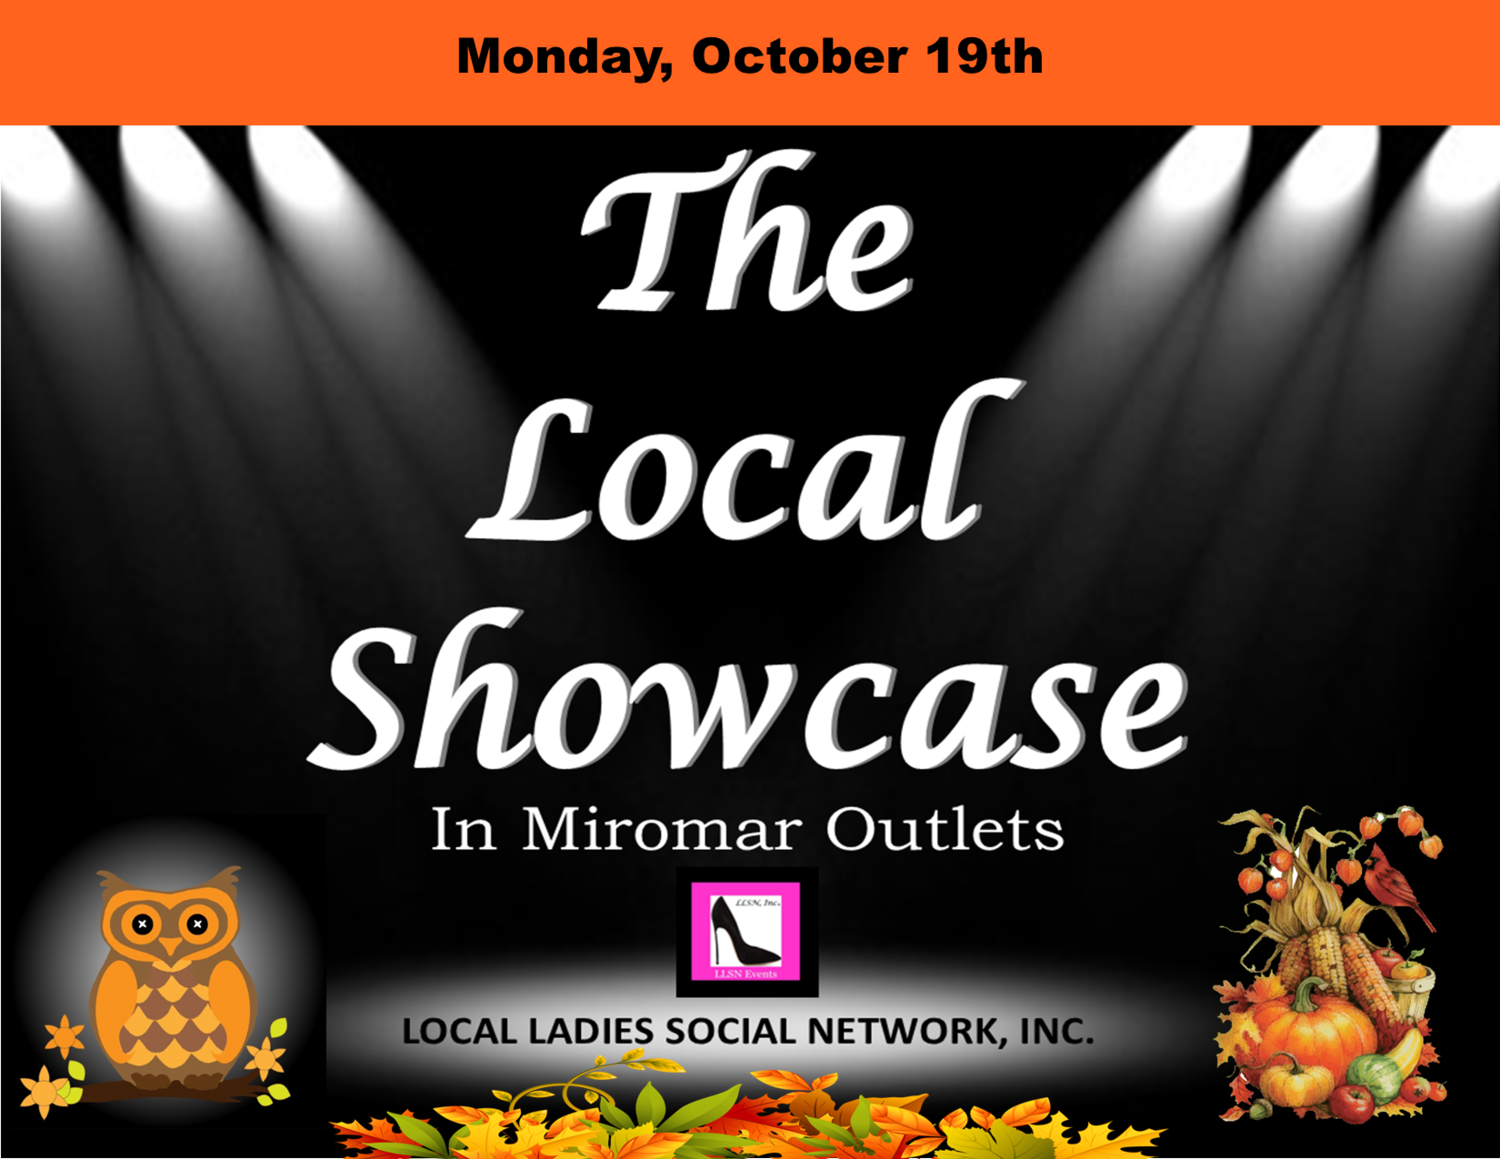 Monday, October 19th, 11am-7pm.